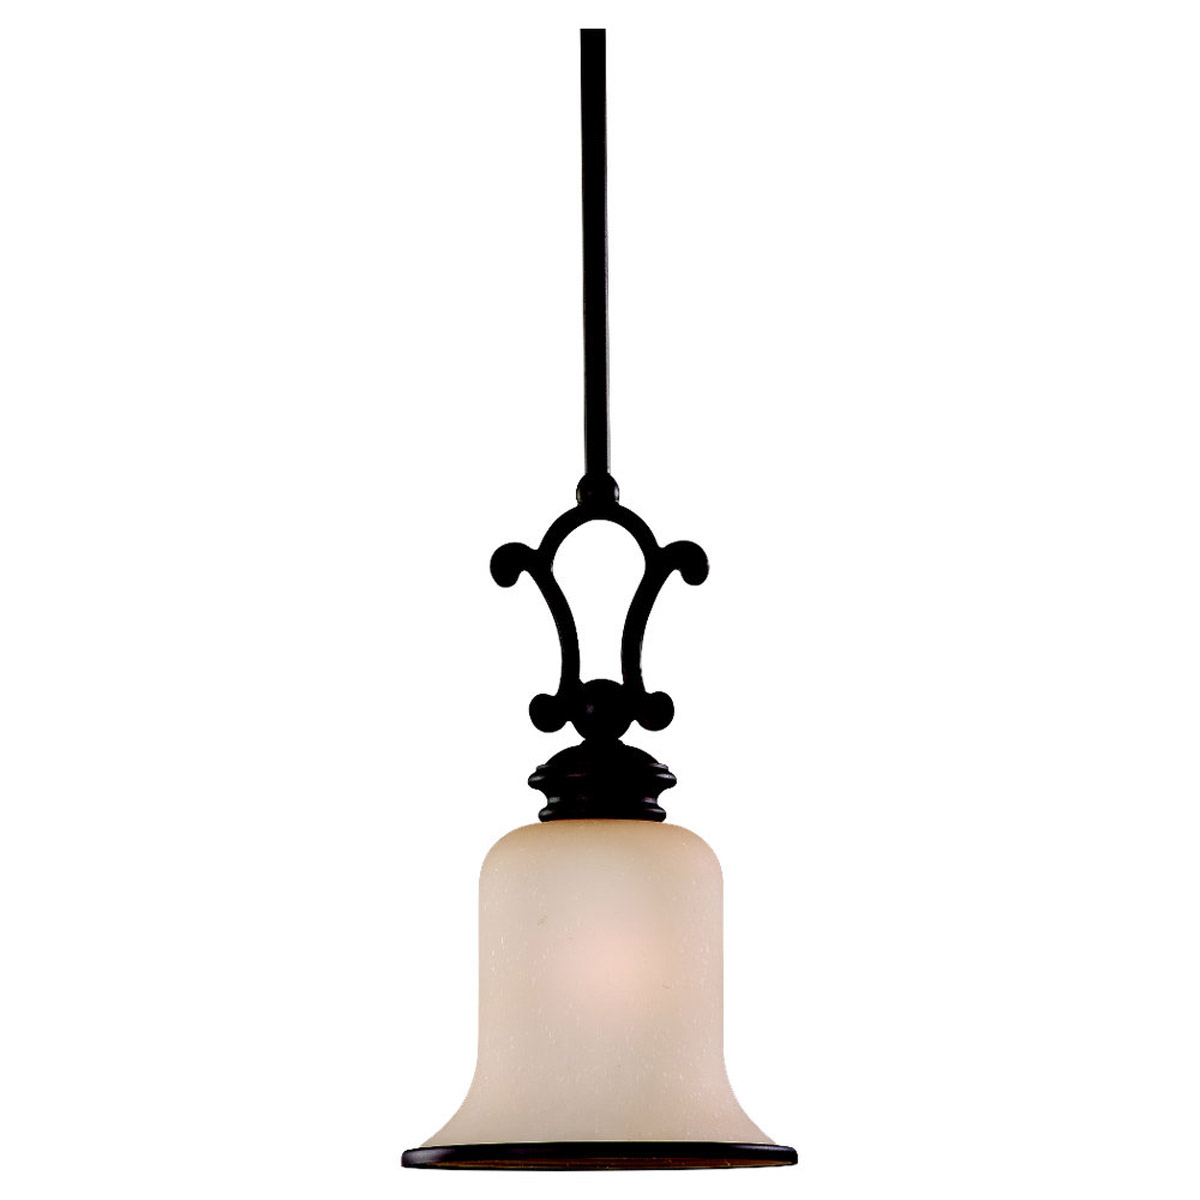 Sea Gull 61145-814 Acadia 1 Light 8 inch Misted Bronze Mini Pendant Ceiling Light in Standard photo